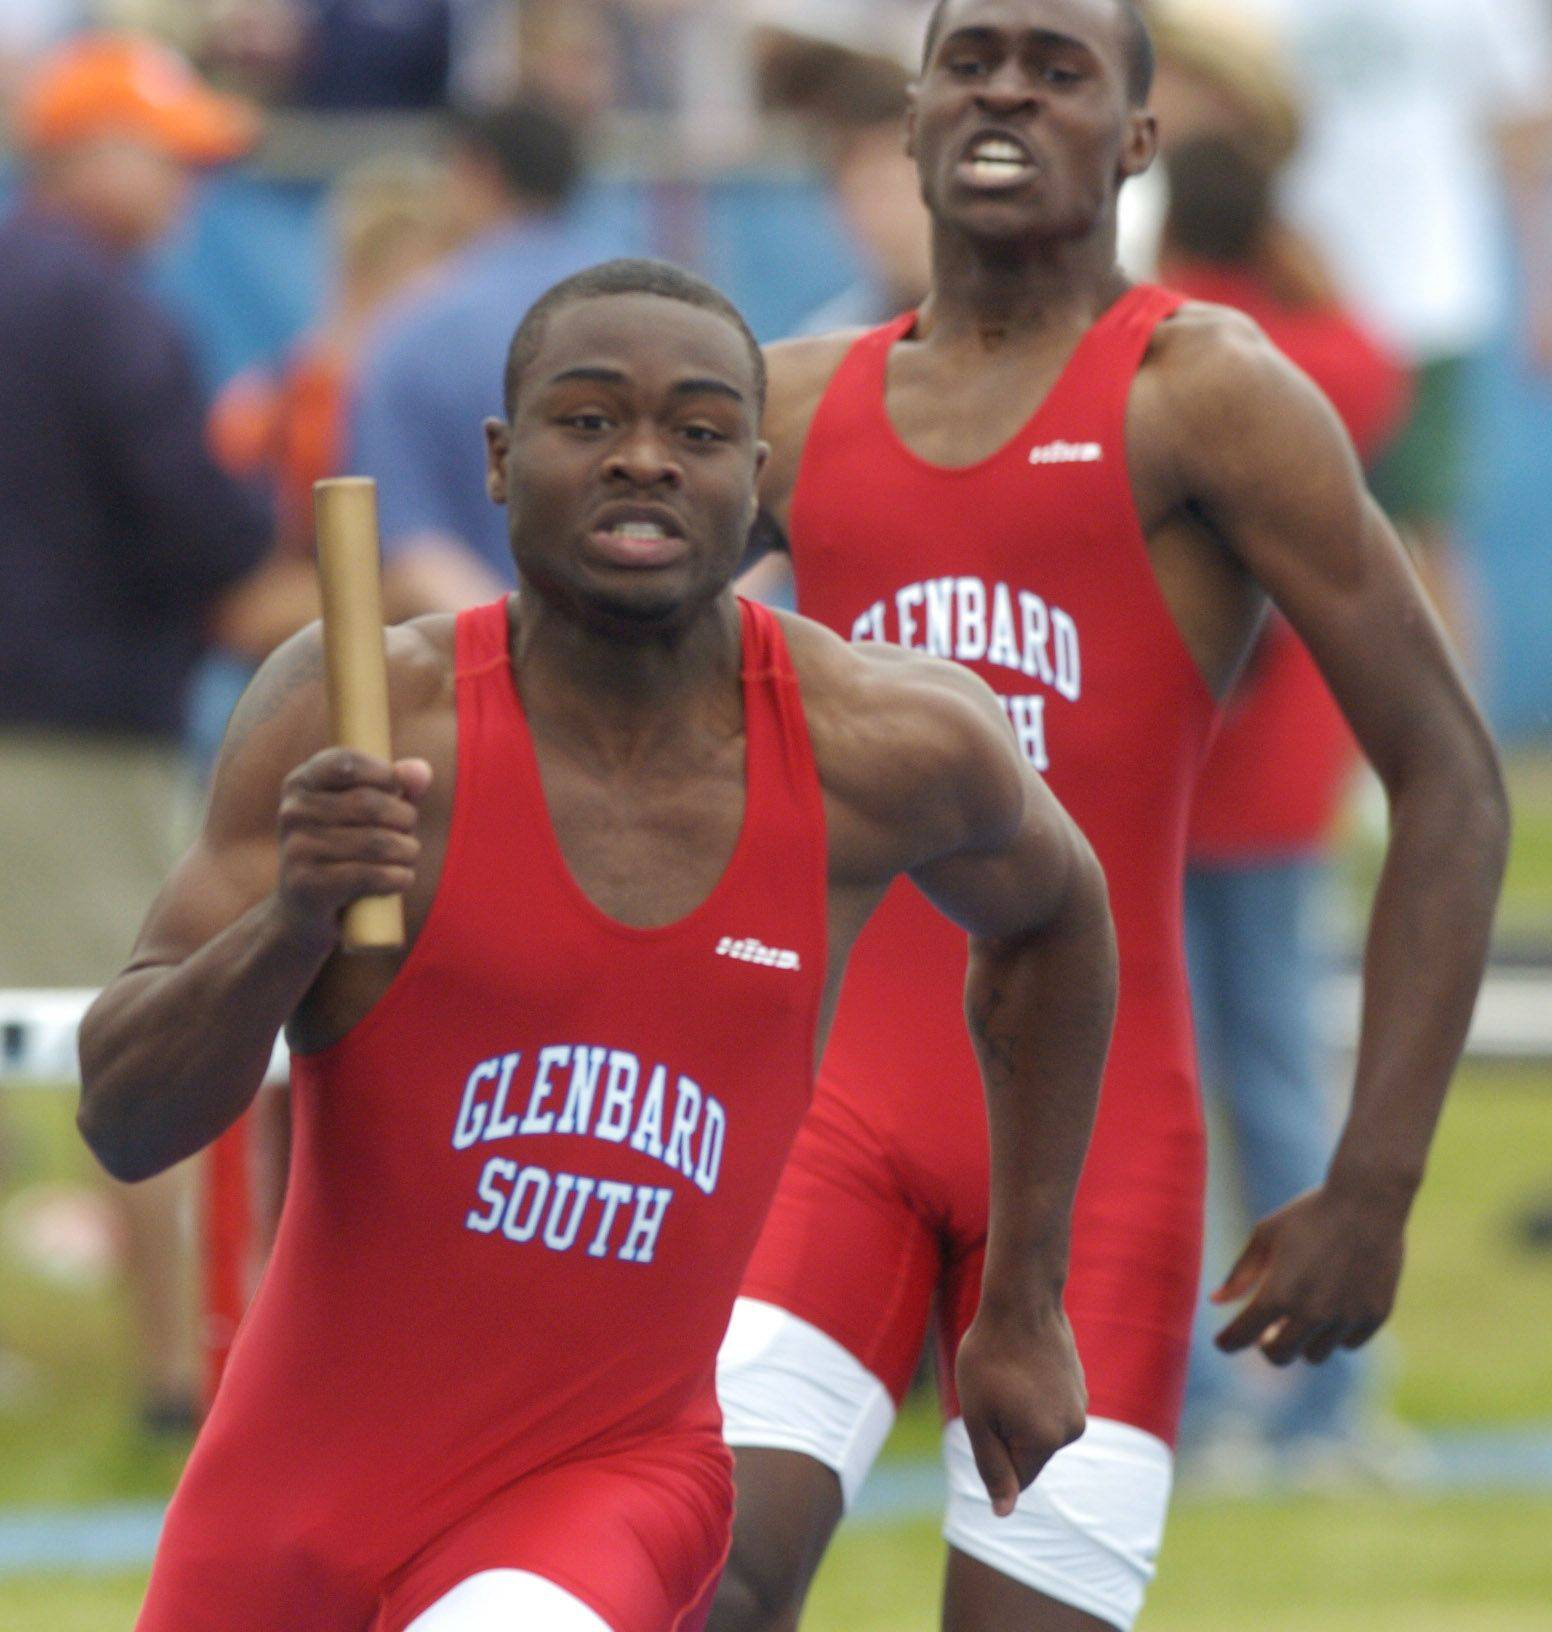 Glenbard South's Wesley Sanders runs after taking the baton from teammate Lamar Johnson in the 400-meter relay during the boys state track finals in Charleston Saturday.